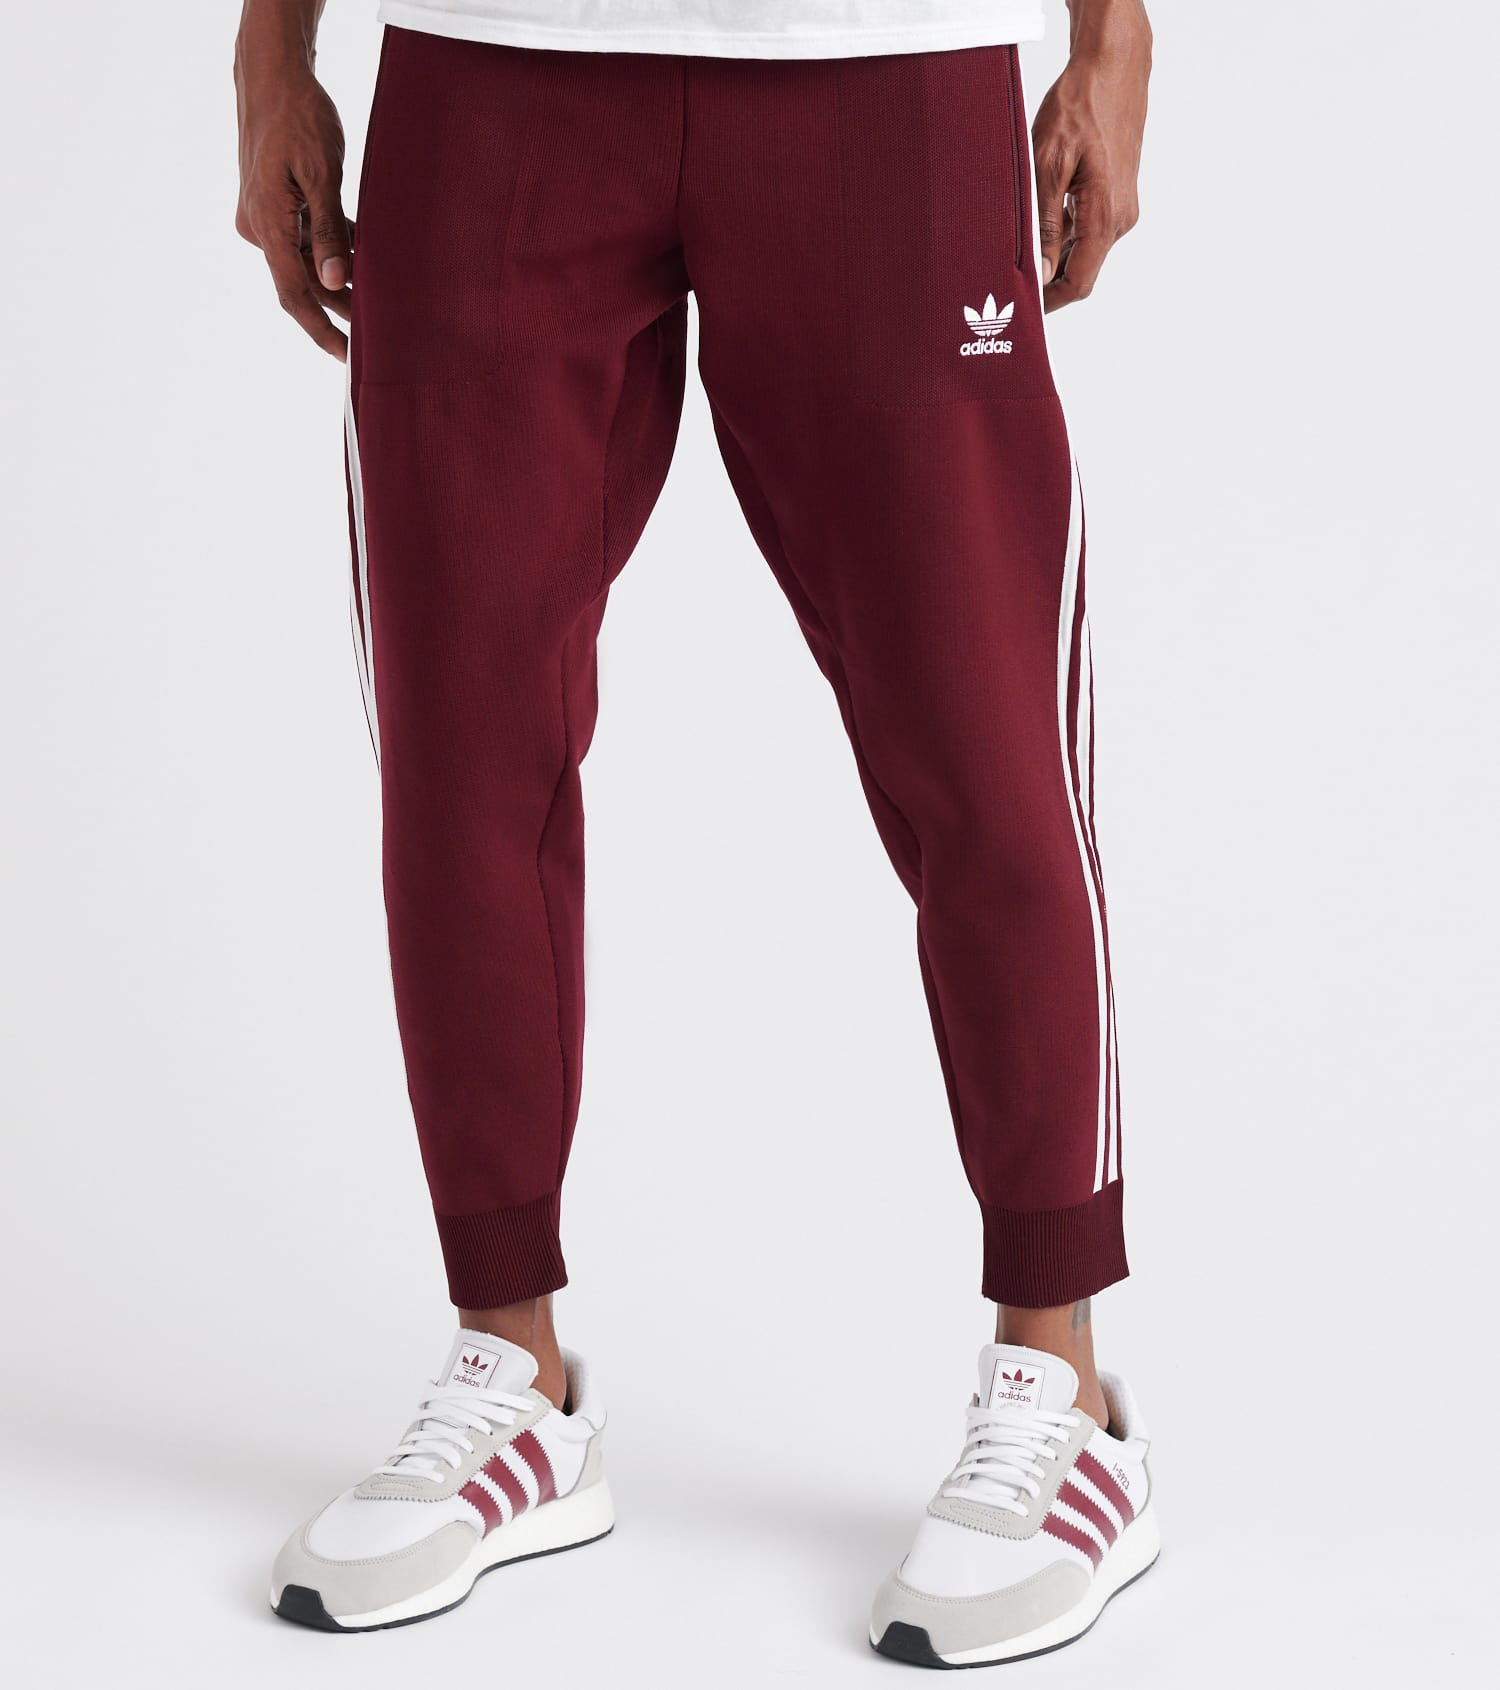 reasonably priced 100% quality quarantee save up to 60% Black Friday Track Pants